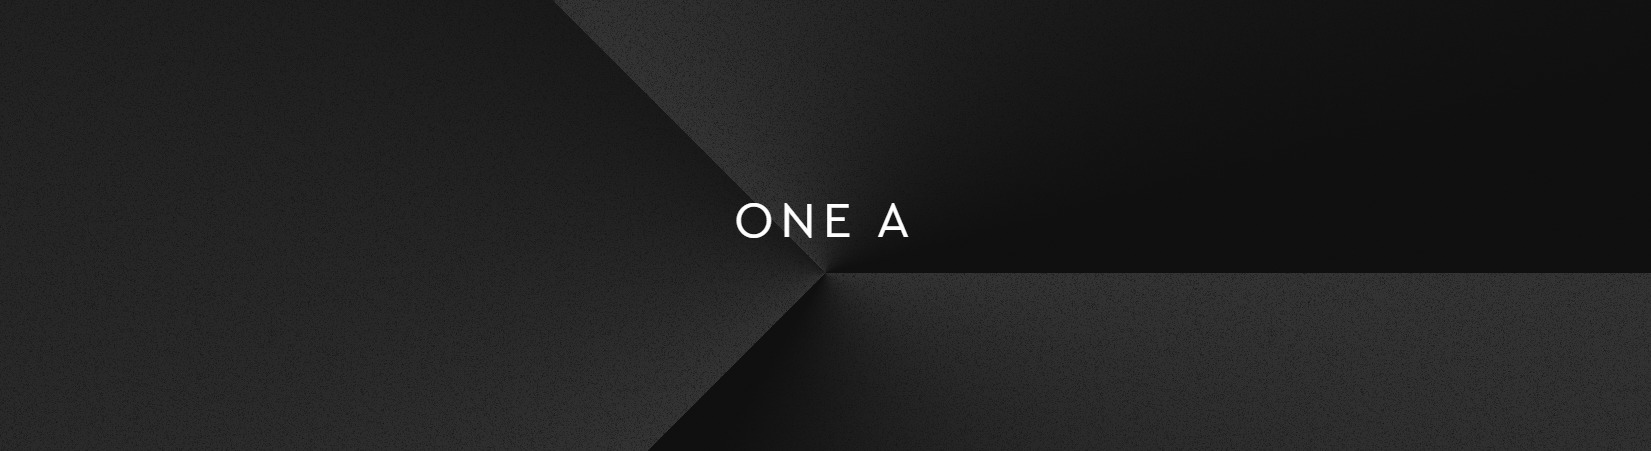 ONE A (@onea) Cover Image